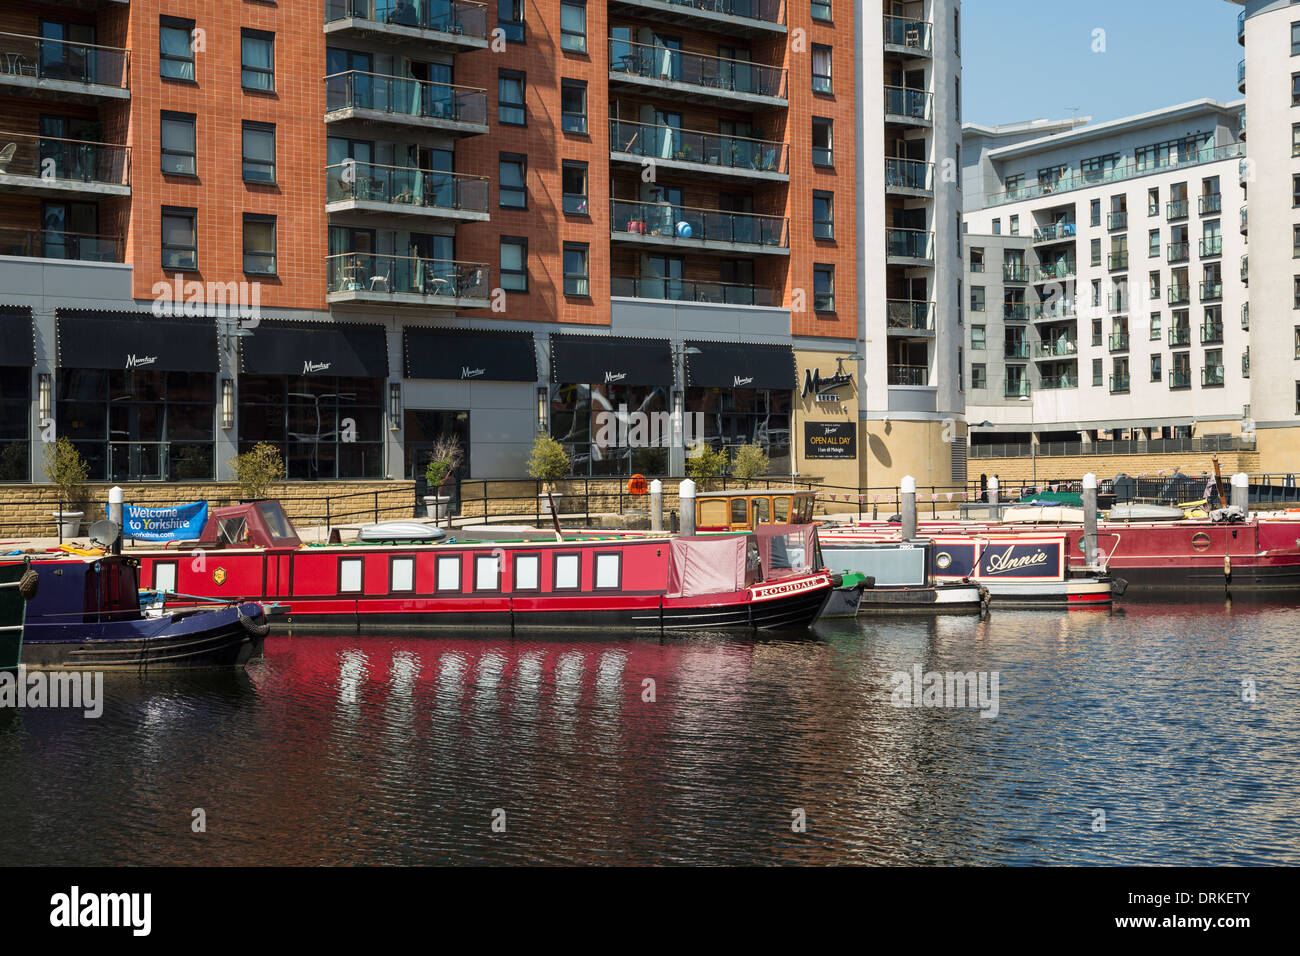 Mumtaz restaurant boats and apartment buildings at Clarence Dock, Leeds, England - Stock Image